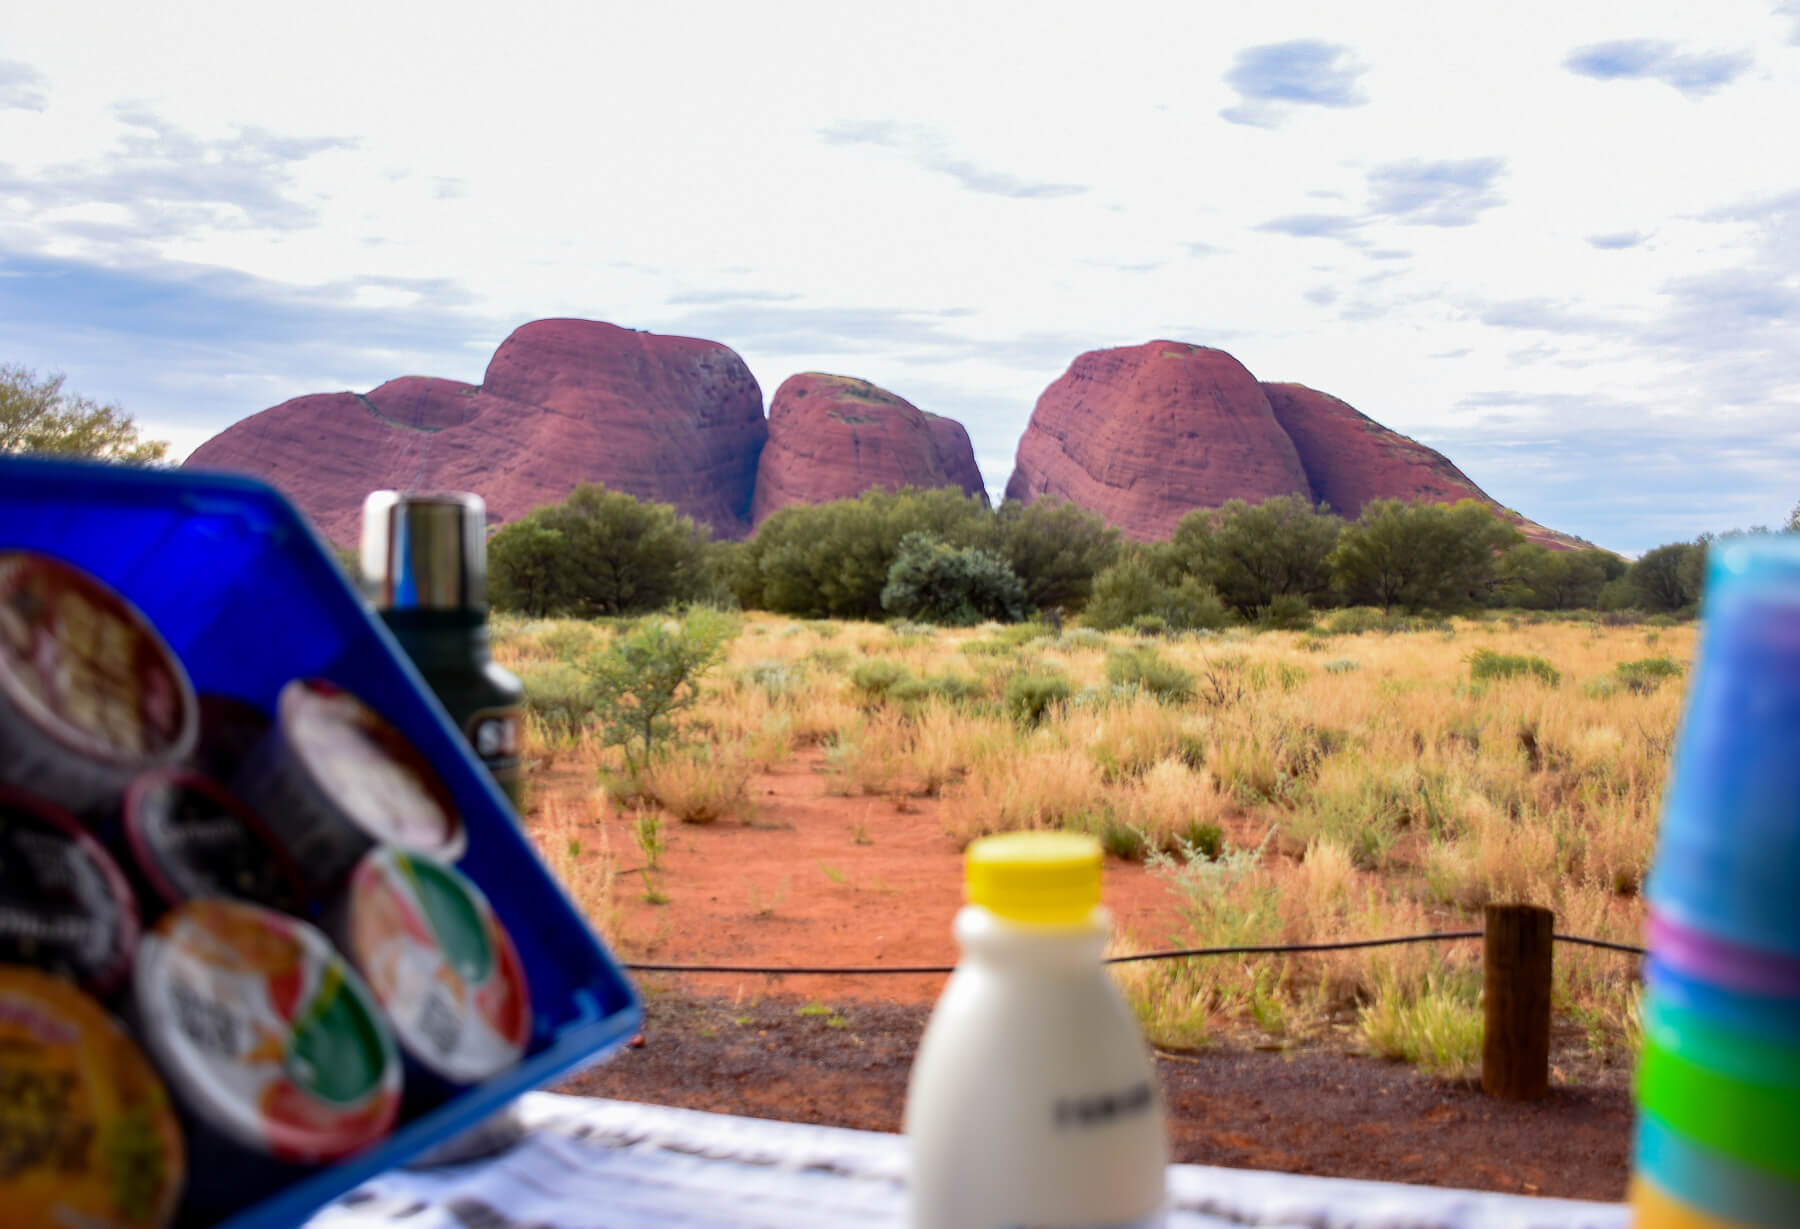 Milk bottle and cereal infront of the Olgas